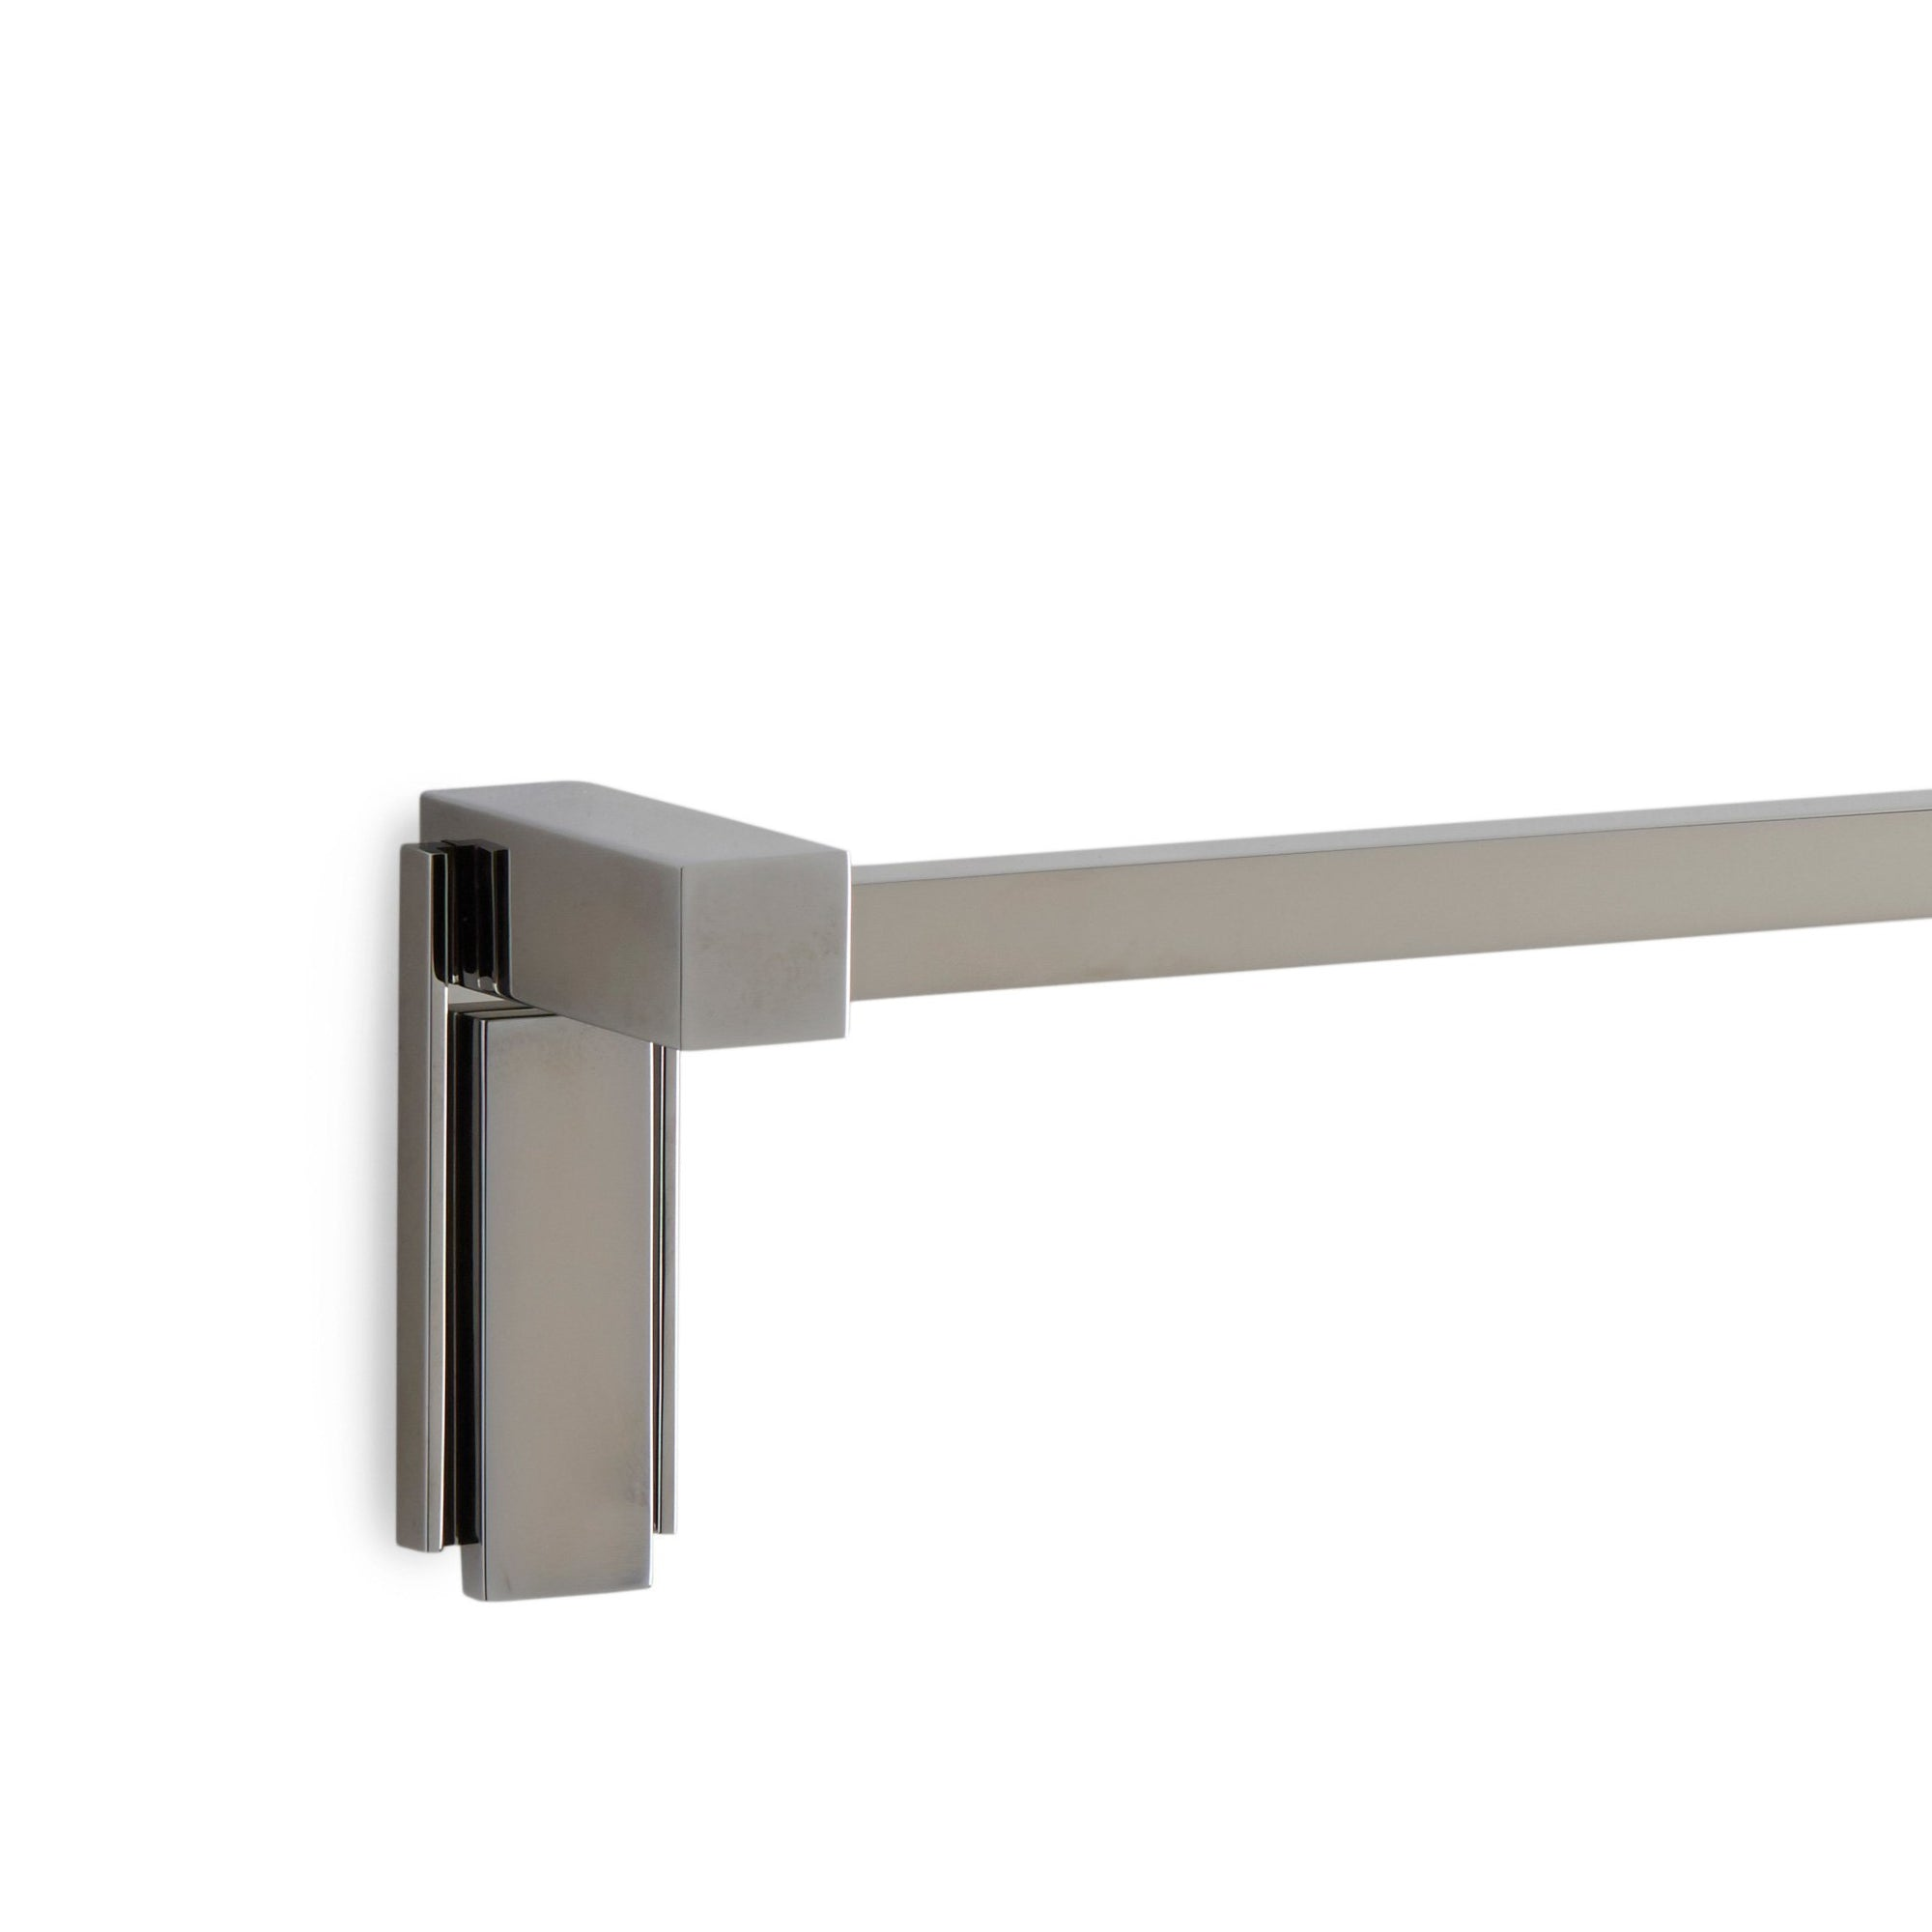 3678-MLIN-30SQ-CP Sherle Wagner International Apollo Towel Bar with Metal insert in Polished Chrome metal finish